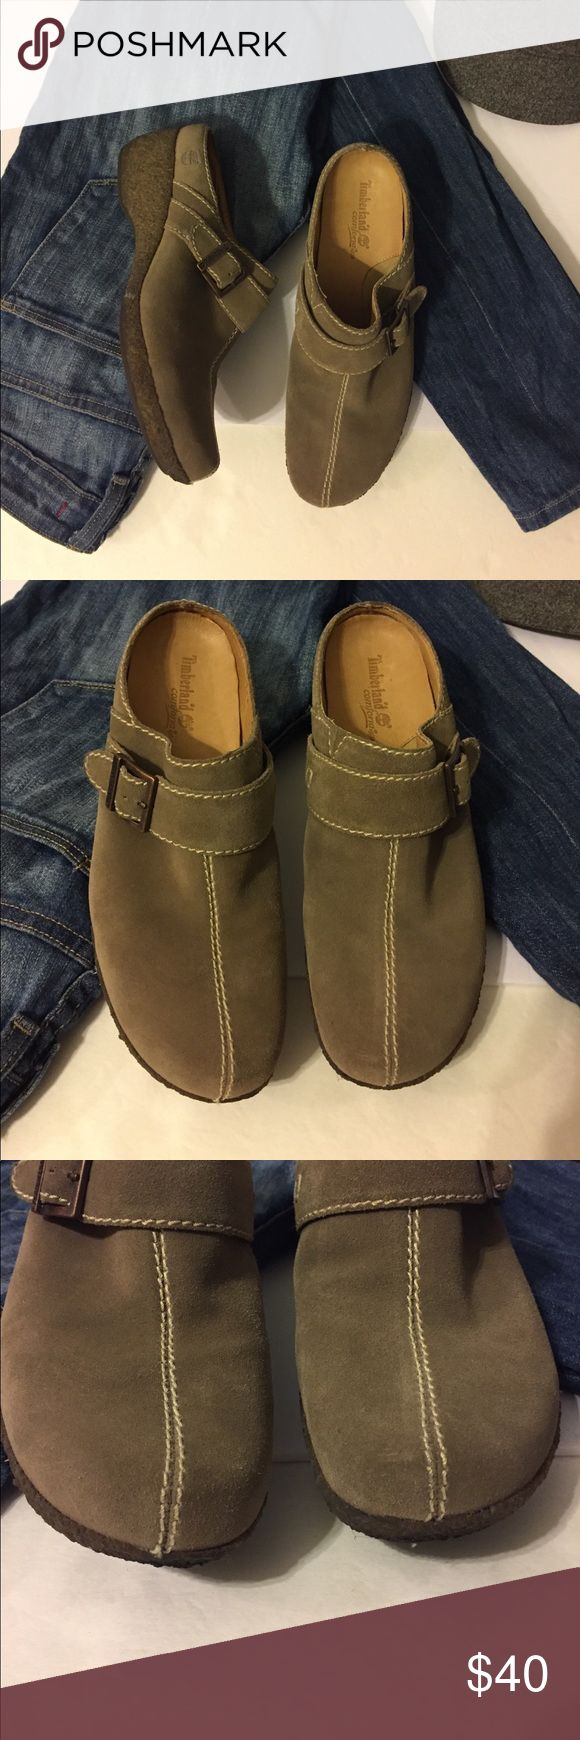 Timberland Shoes These Timberland are in excellent condition.  Barely worn.  Soft suede mules in a grayish tan color.  Perfect for fall.  A little discoloration on the rubber around the sole, no other wear or discoloration.  Size 7 1/2 Timberland Shoes Mules & Clogs